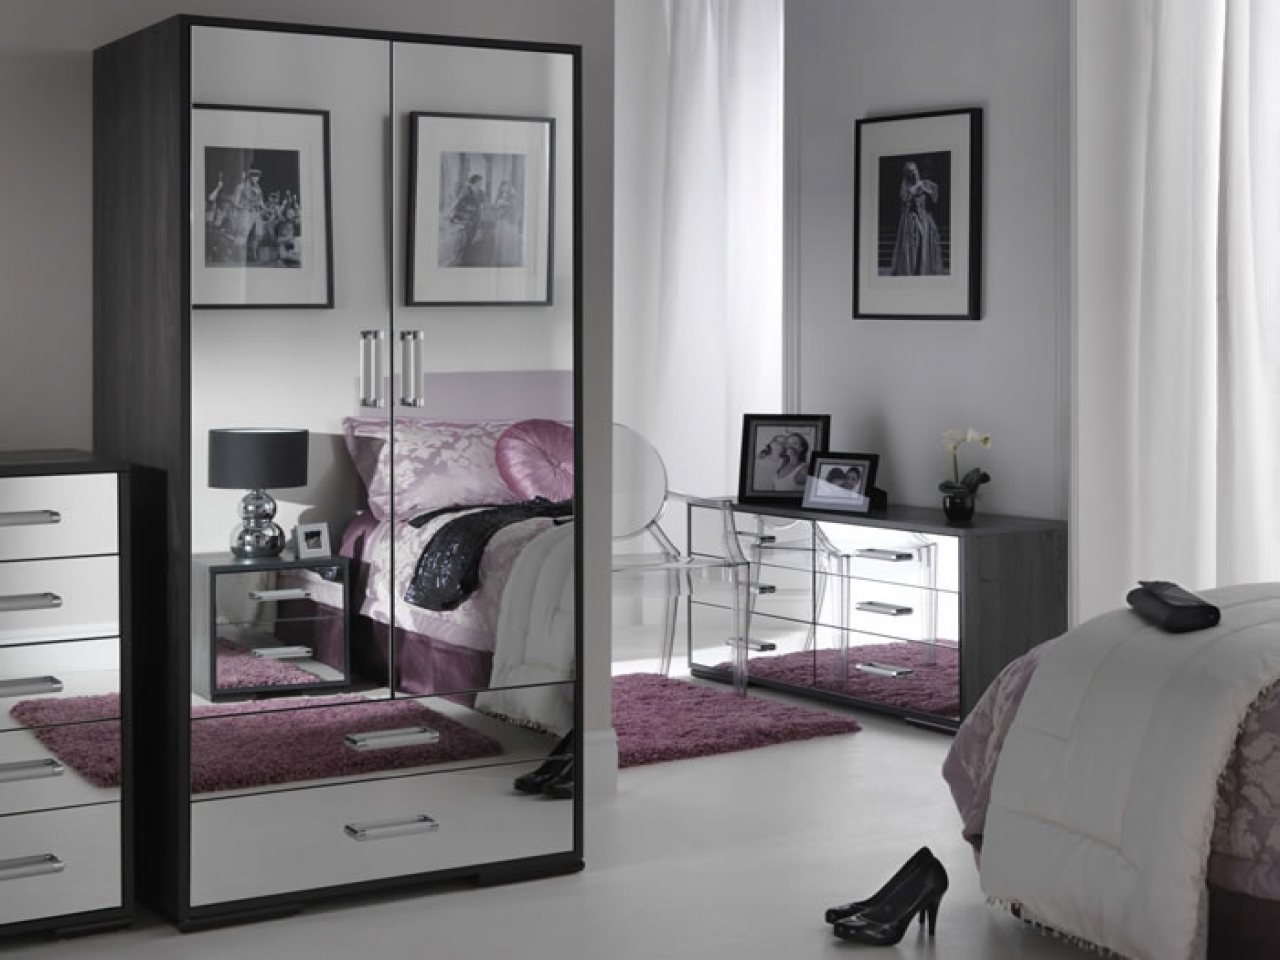 Remarkable Mirrored Bedroom Dresser Royals Courage New Ornament Download Free Architecture Designs Scobabritishbridgeorg